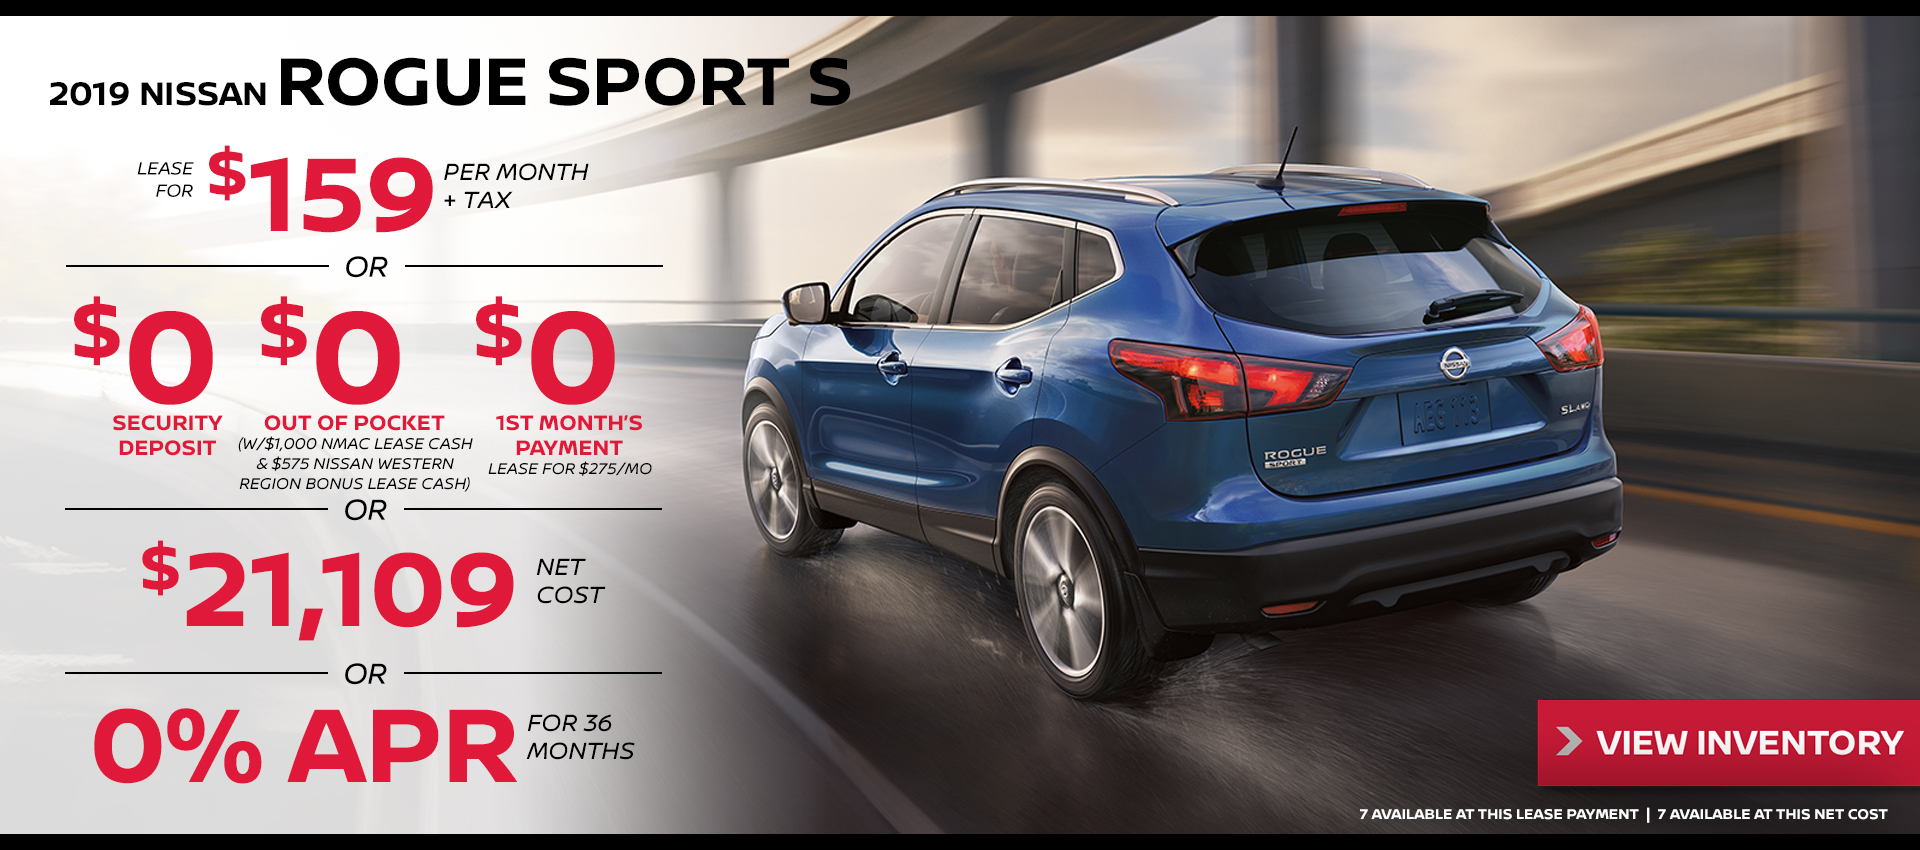 Mossy Nissan - Rogue Sport $159 Lease HP